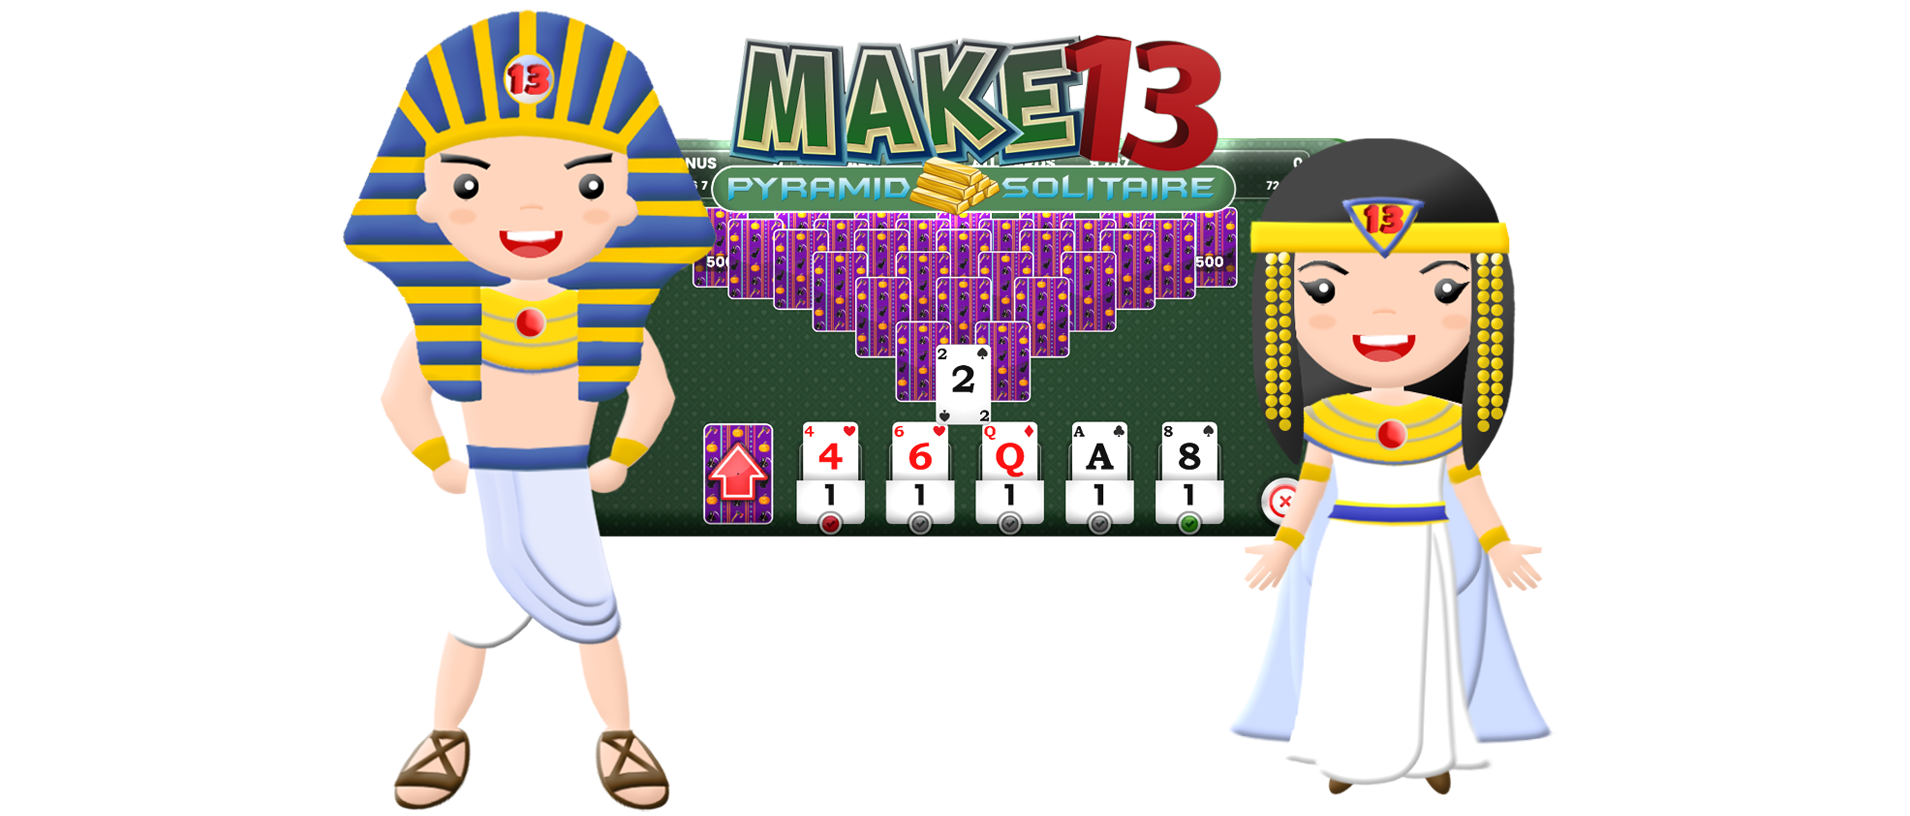 Make 13 Online Pyramid Solitaire Tournaments